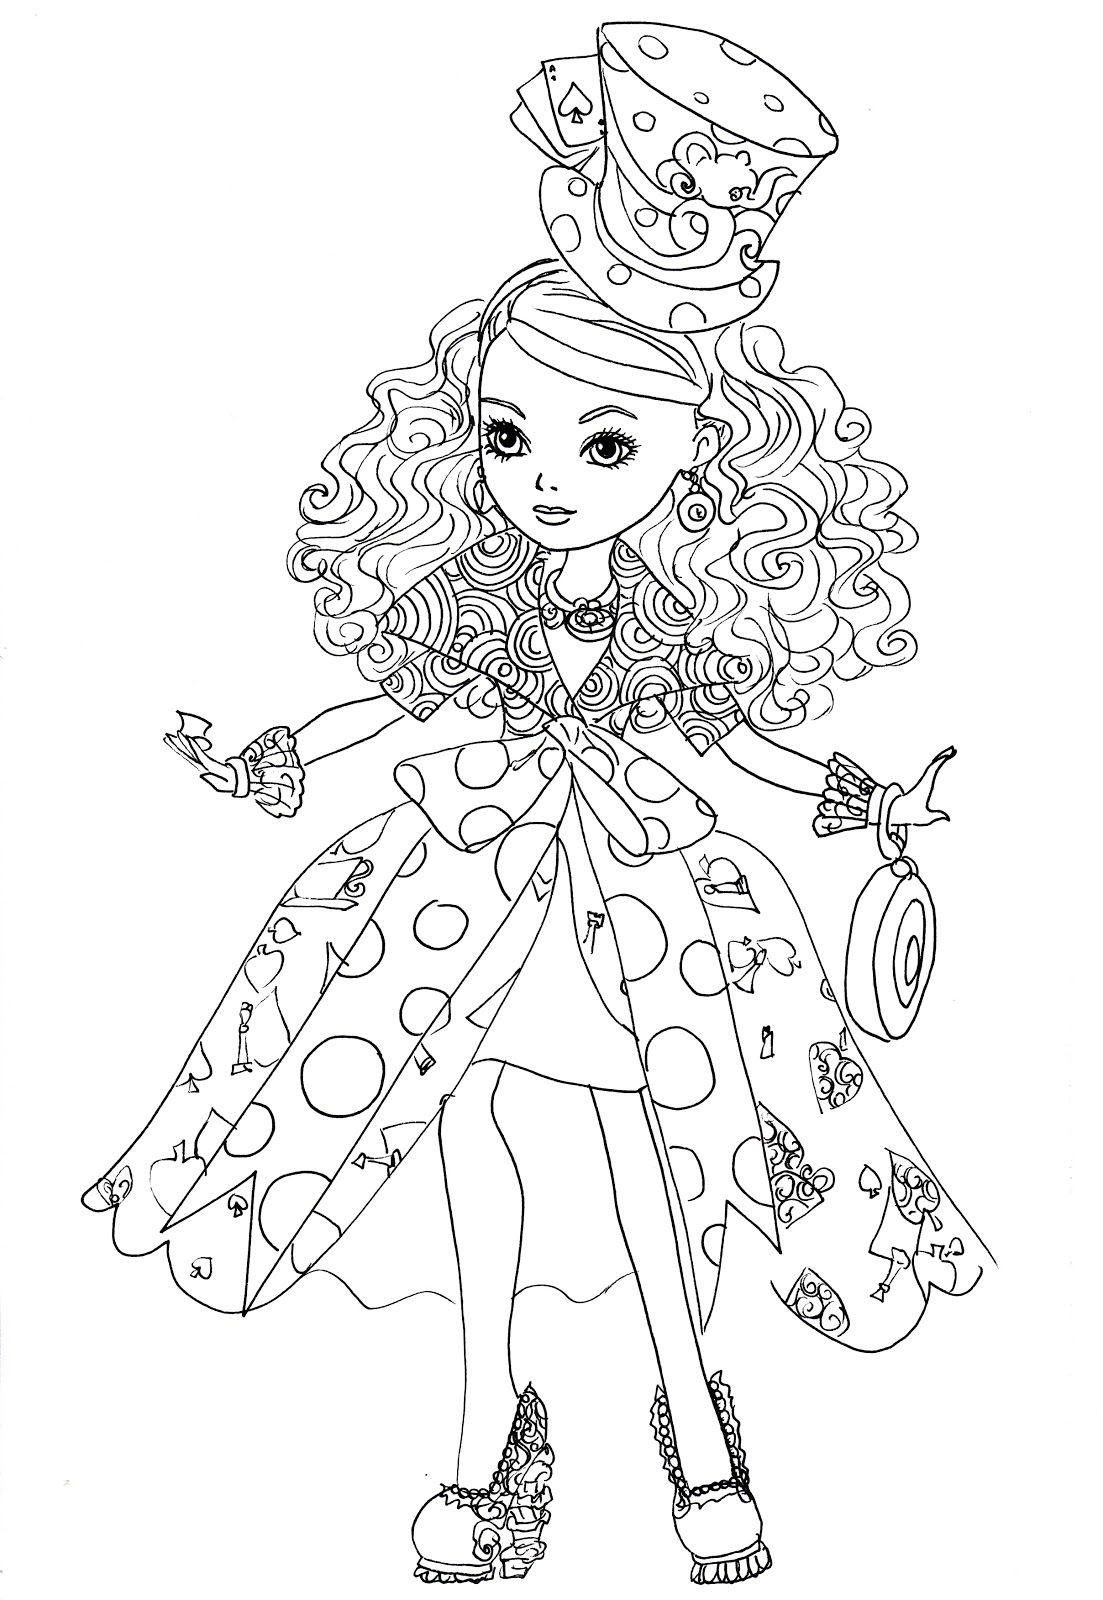 Maddie Jpg 1103 1600 Cartoon Coloring Pages Coloring Pages Coloring Books